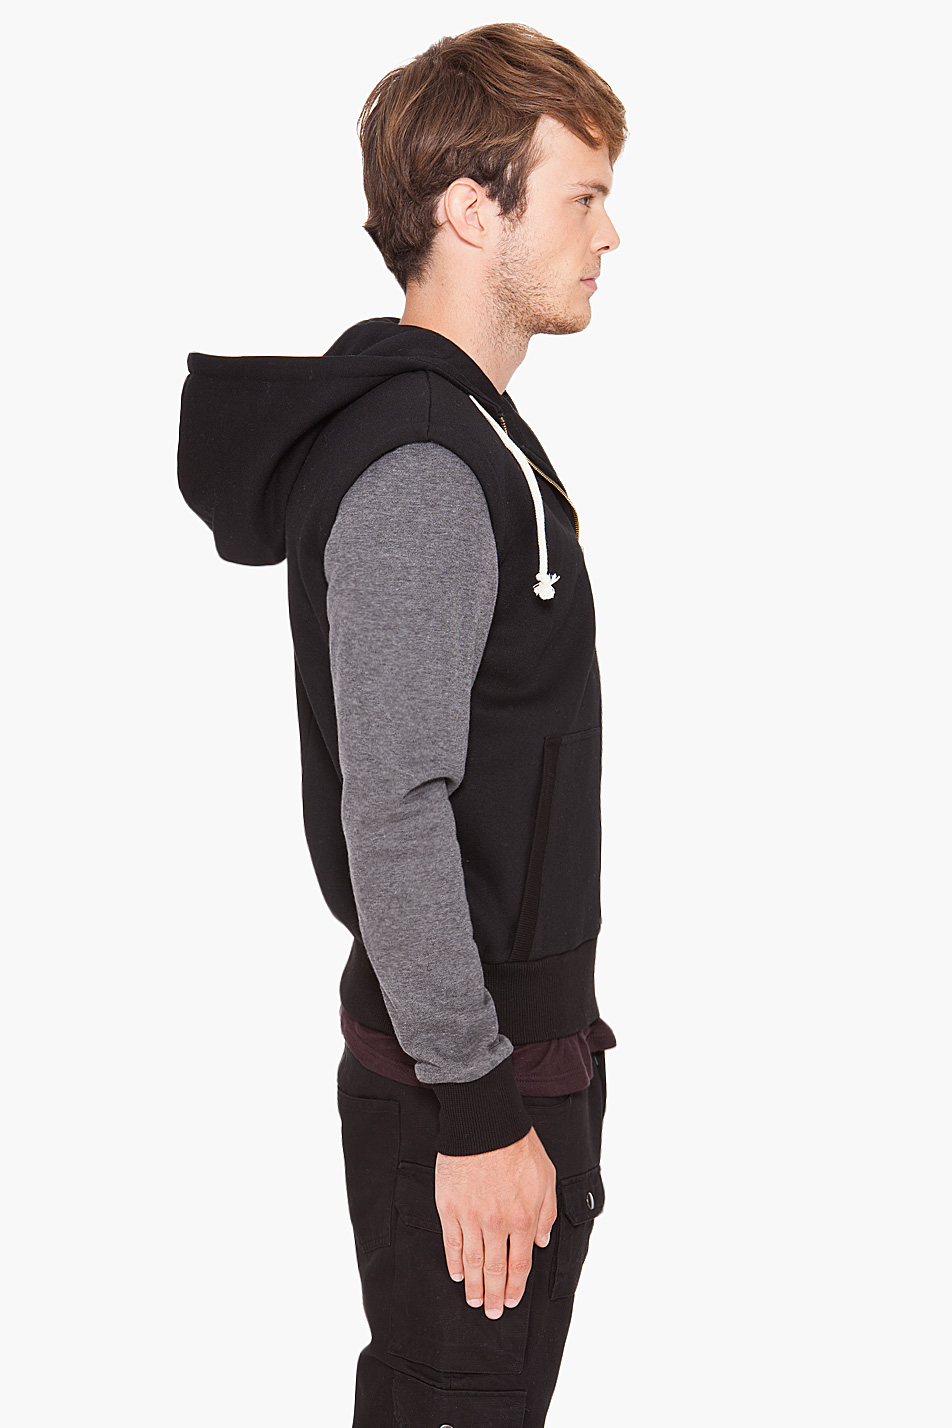 b1bfc9f45fc Lyst - Shades of Grey by Micah Cohen Zip Up Hoodie in Black for Men